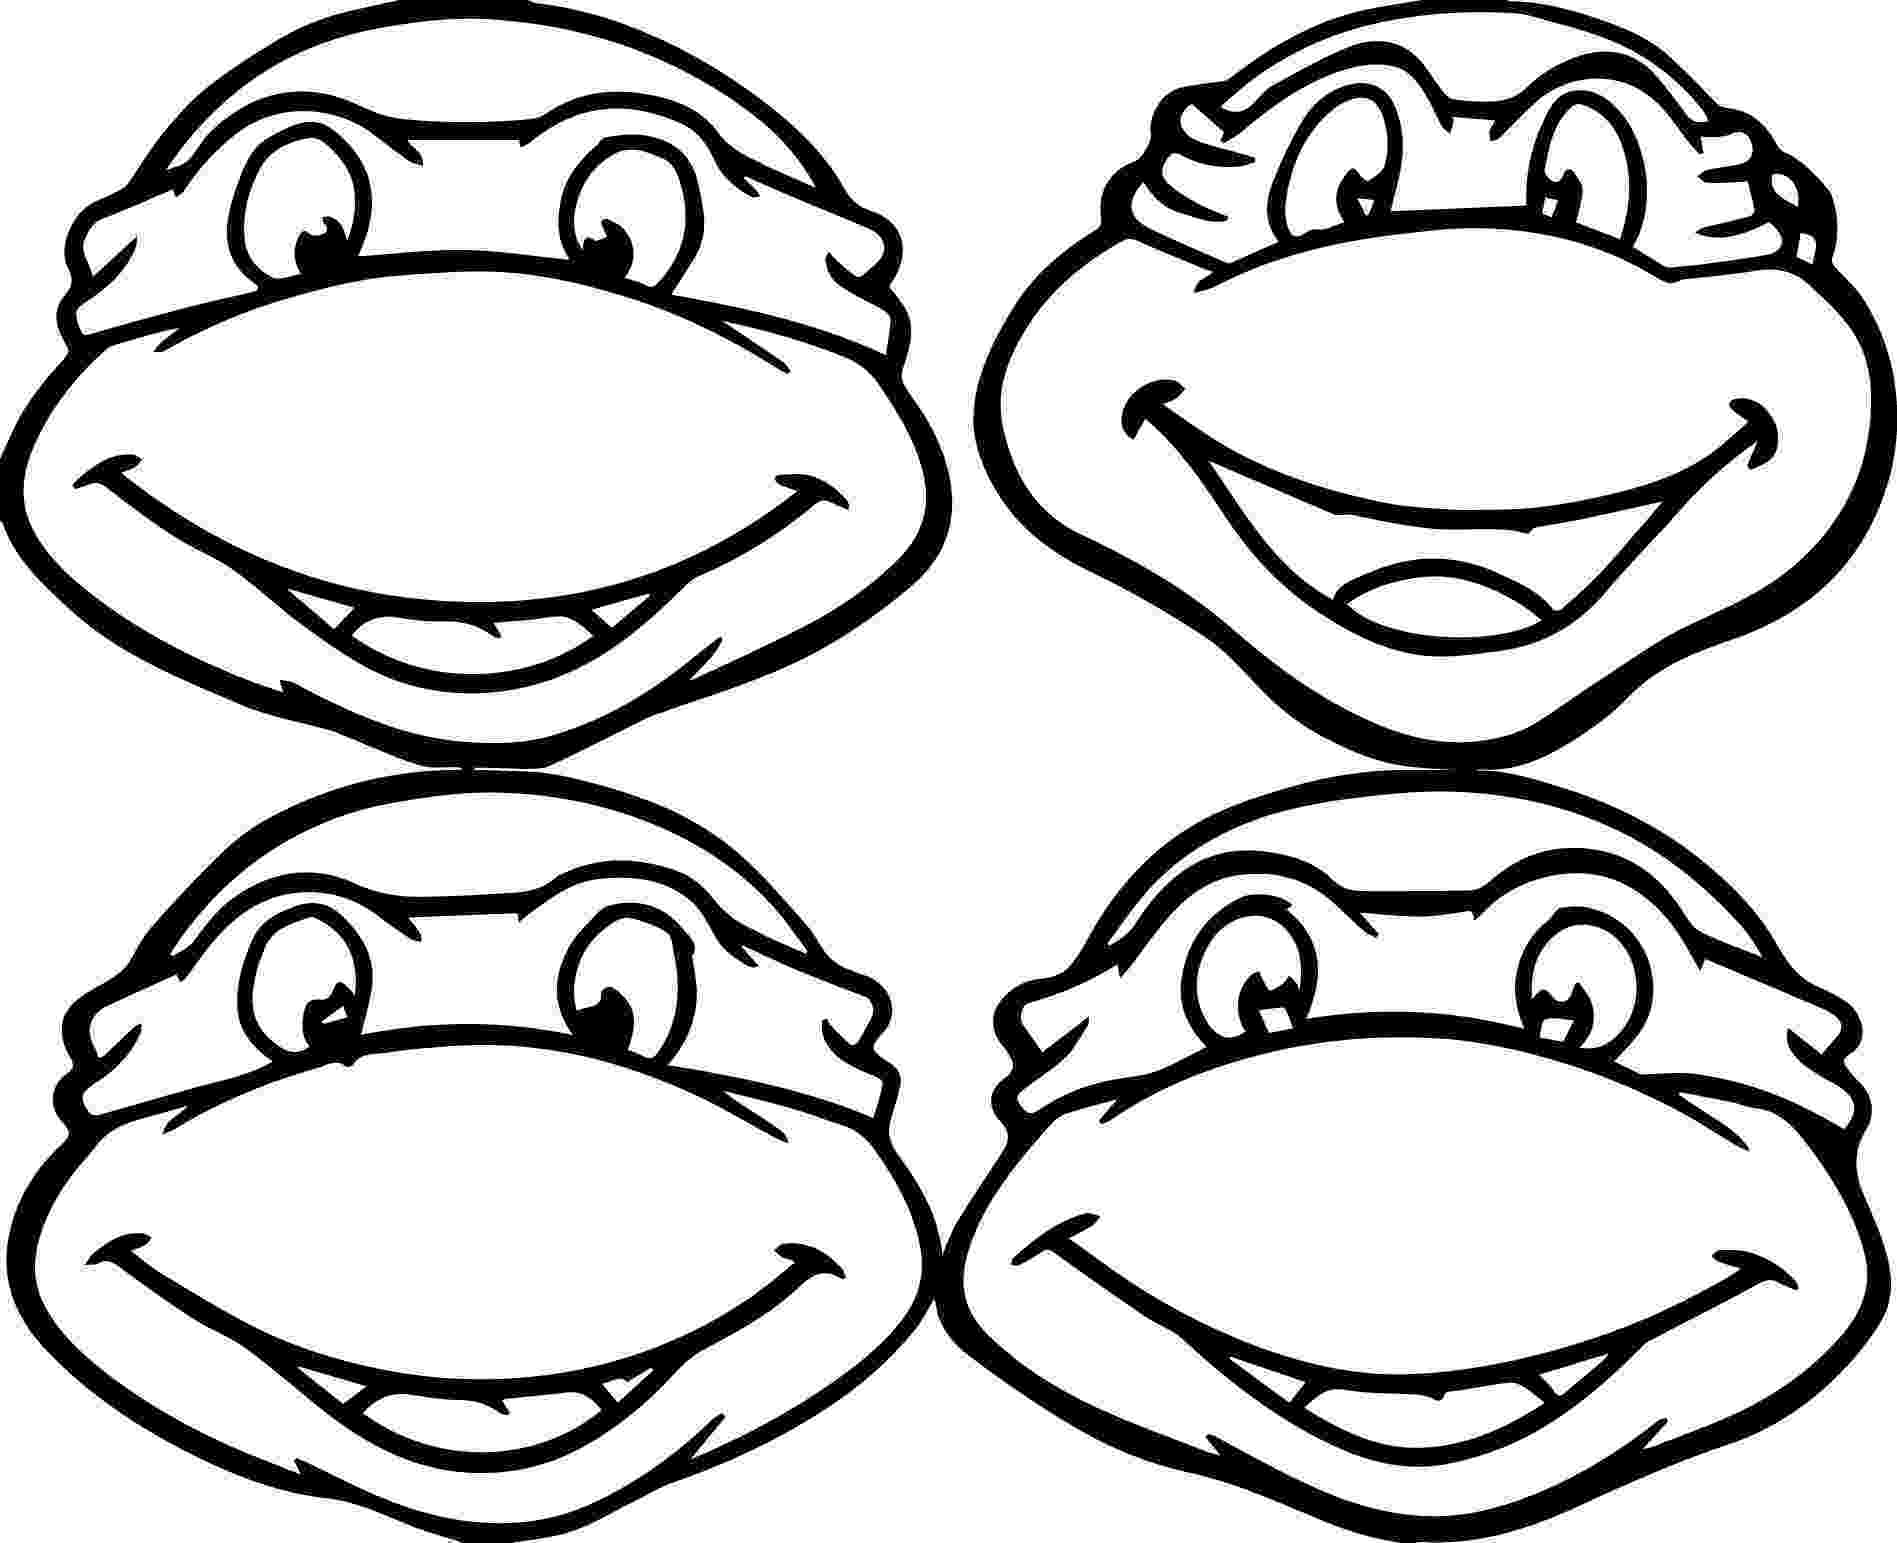 ninja turtles pictures to color teenage mutant ninja turtles coloring pages turtles to color ninja pictures